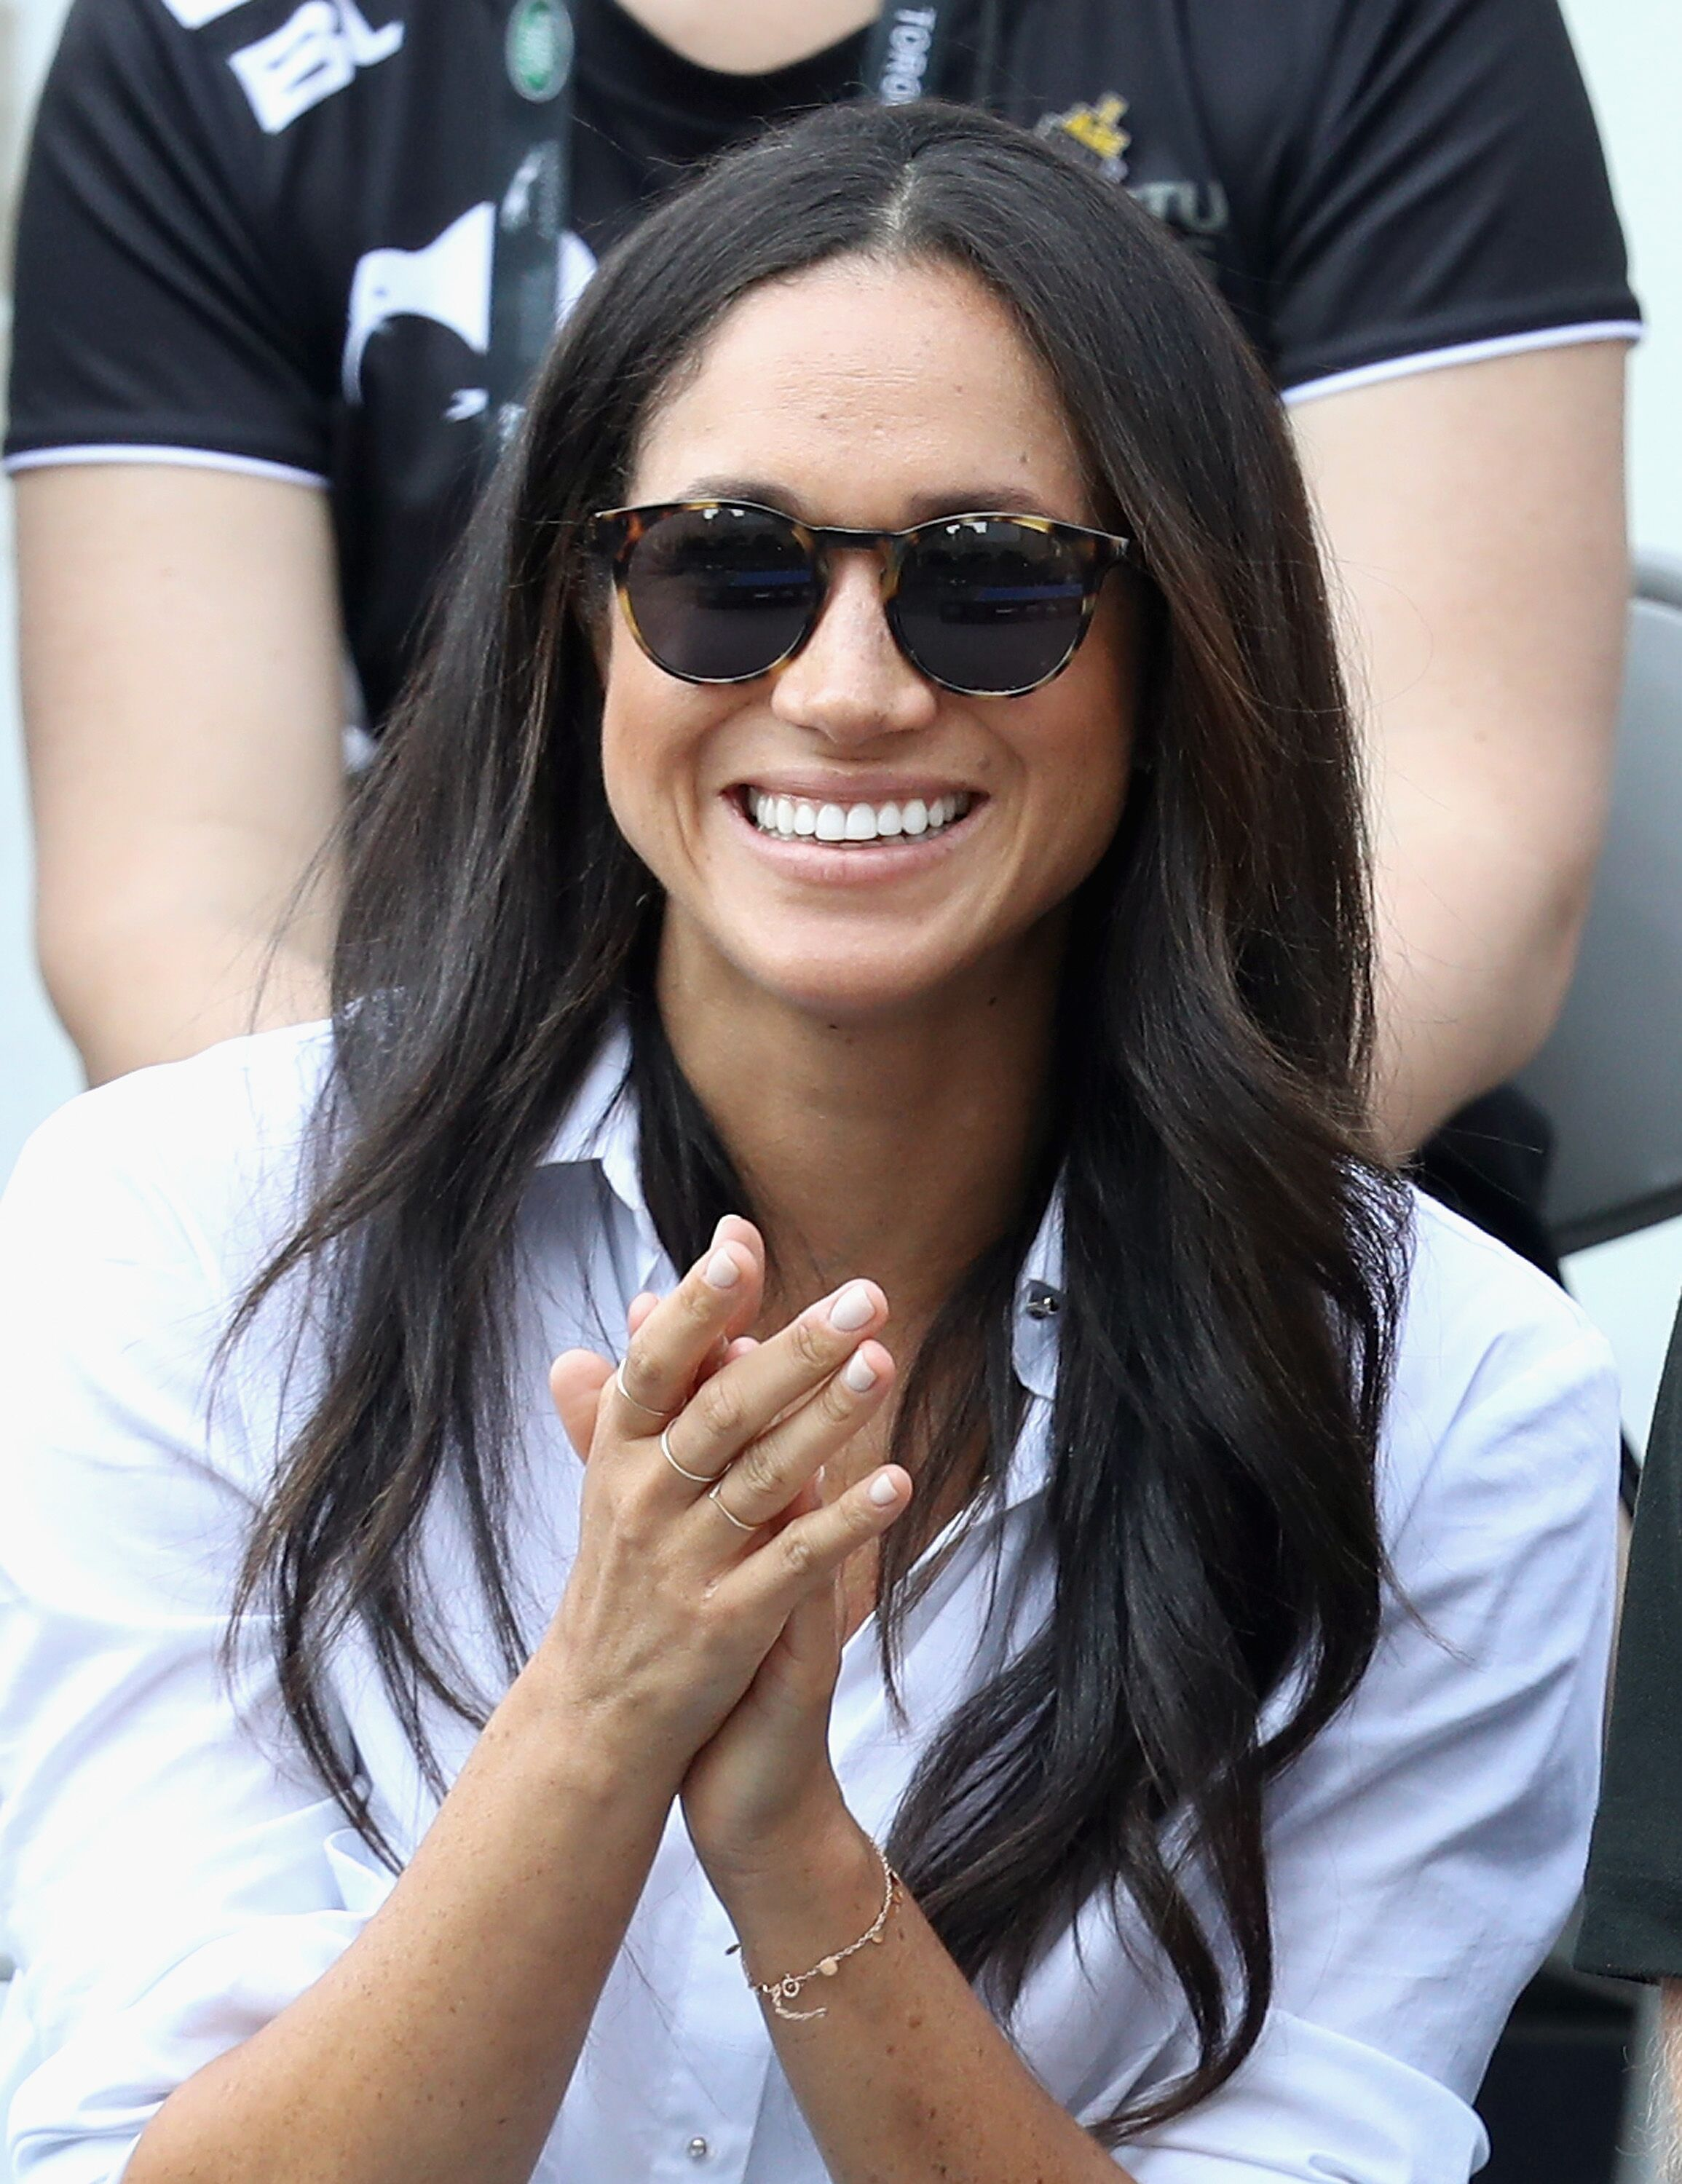 Meghan Markle attends a Wheelchair Tennis match during the Invictus Games 2017 at Nathan Philips Square in Toronto, Canada | Photo: Getty Images